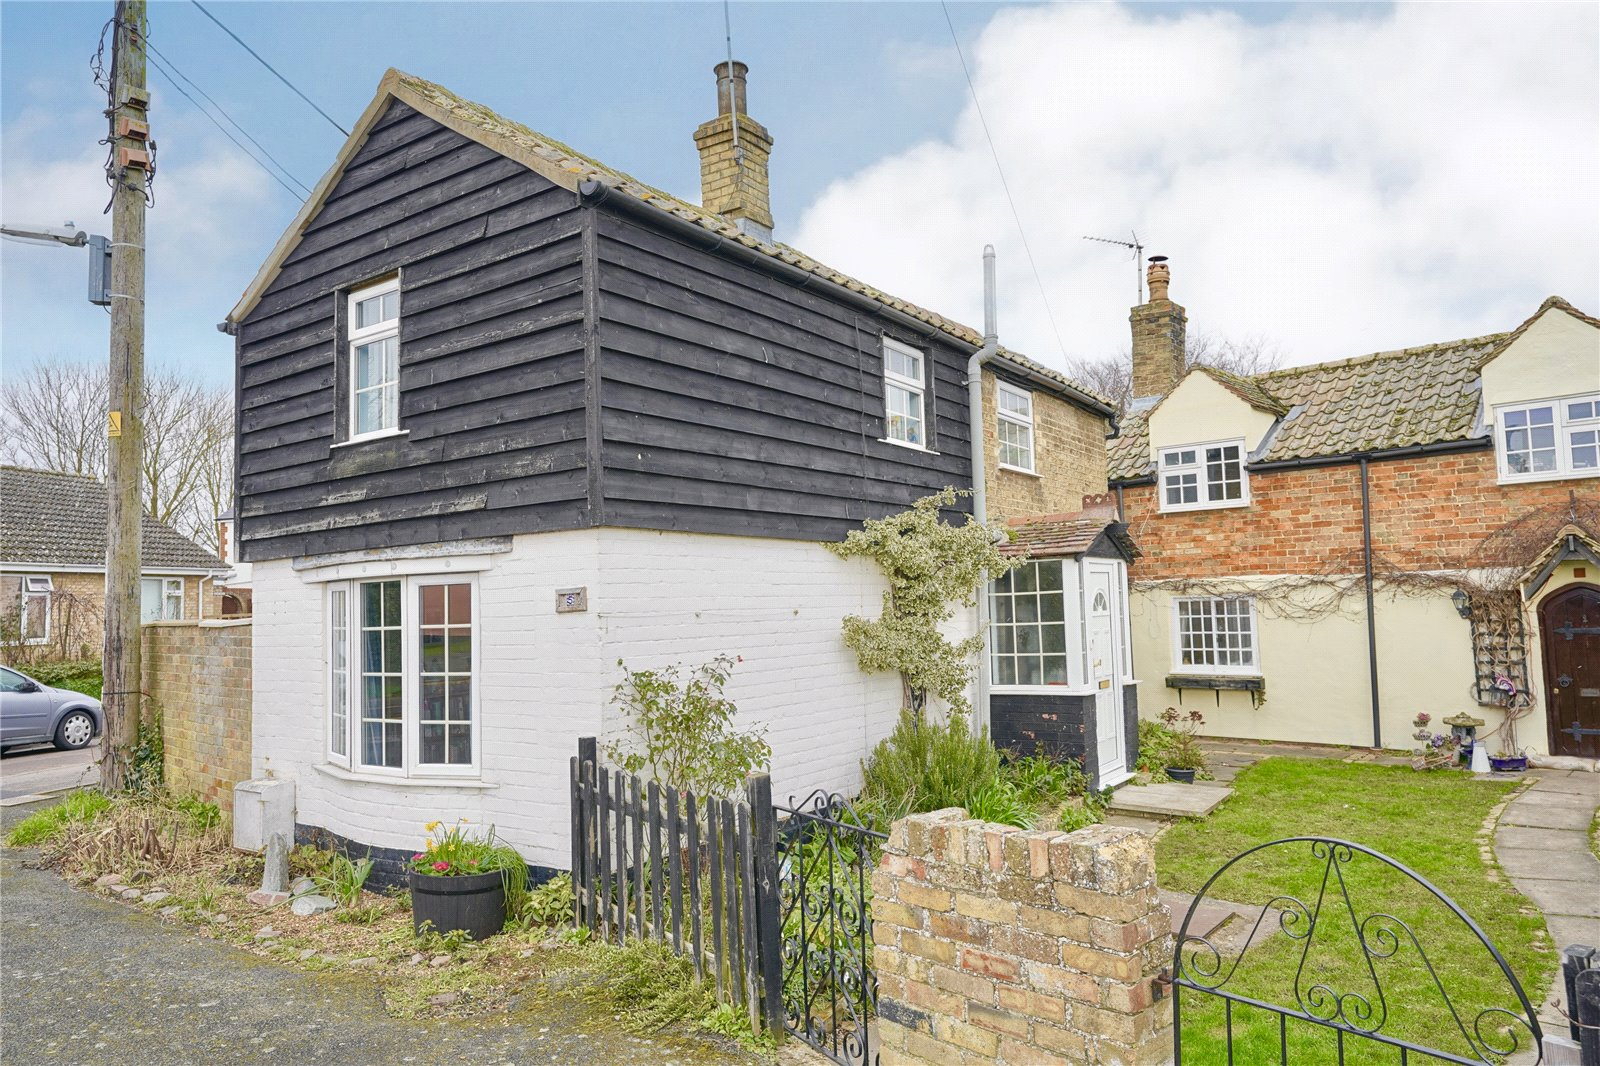 2 bed house for sale in Earith, PE28 3PT 0